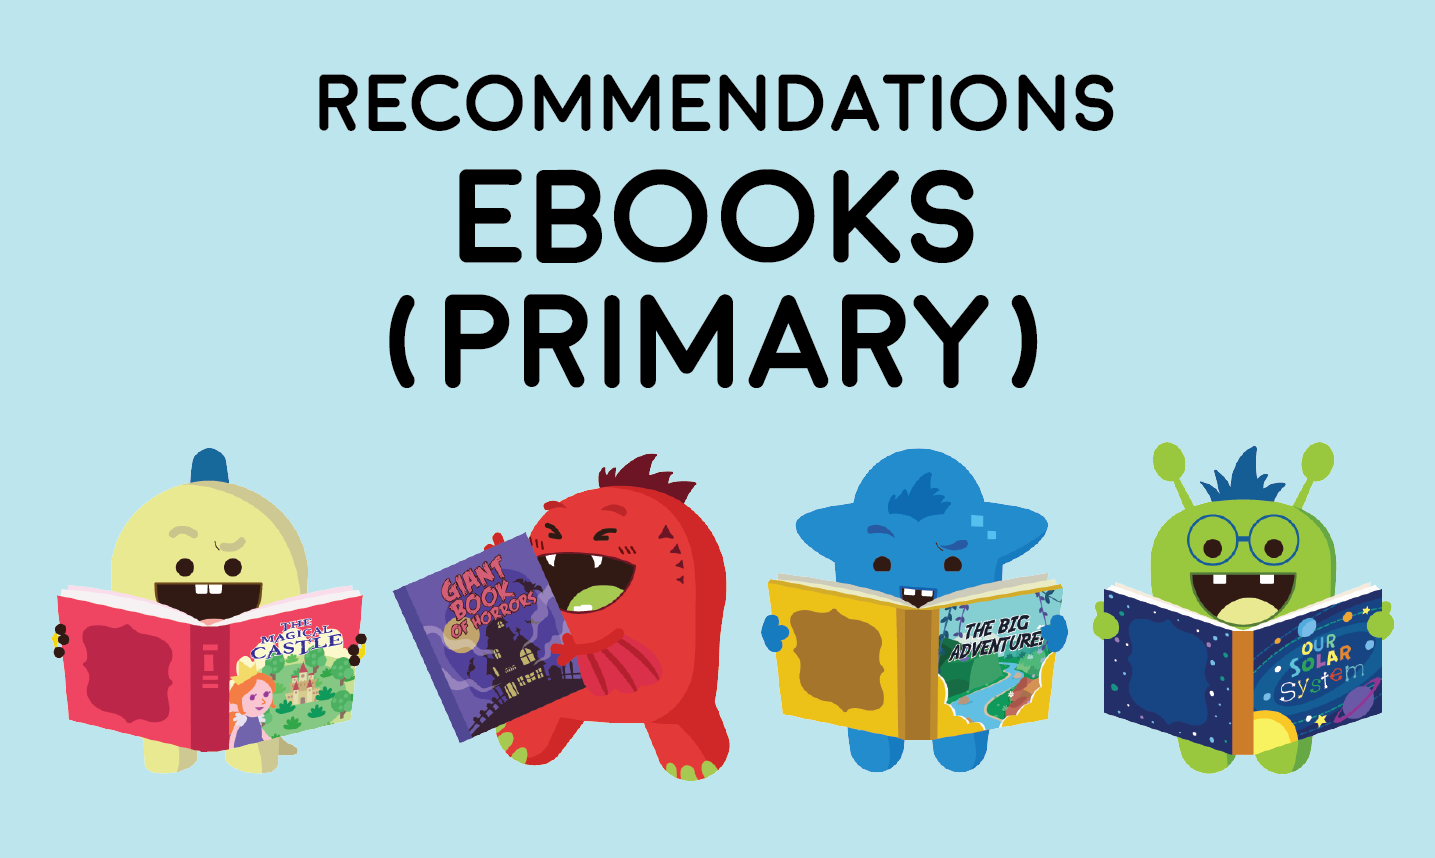 Primary ebook recommendations image